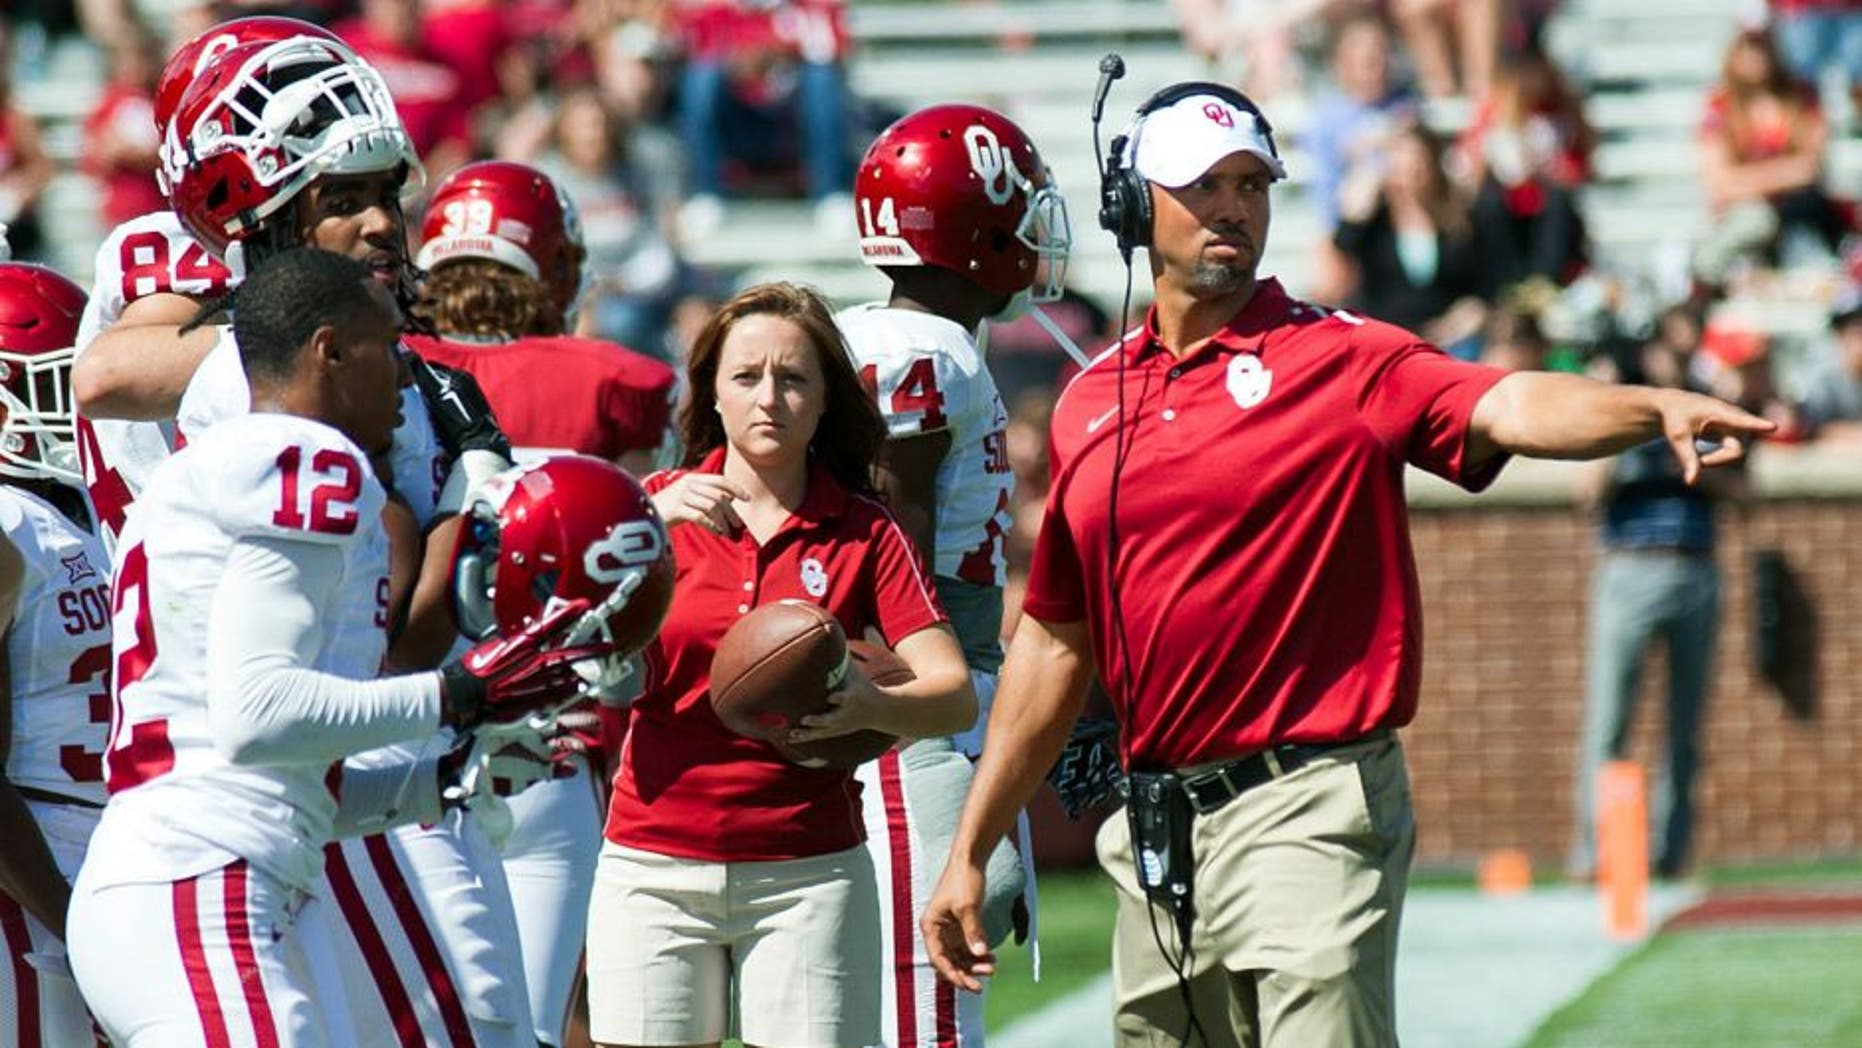 Apr 11, 2015; Norman, OK, USA; Oklahoma Sooners defensive line coach Diron Reynolds directs players during the spring football game at Gaylord Family Oklahoma Memorial Stadium. Red wins 20-7 over White. Mandatory Credit: Rob Ferguson-USA TODAY Sports